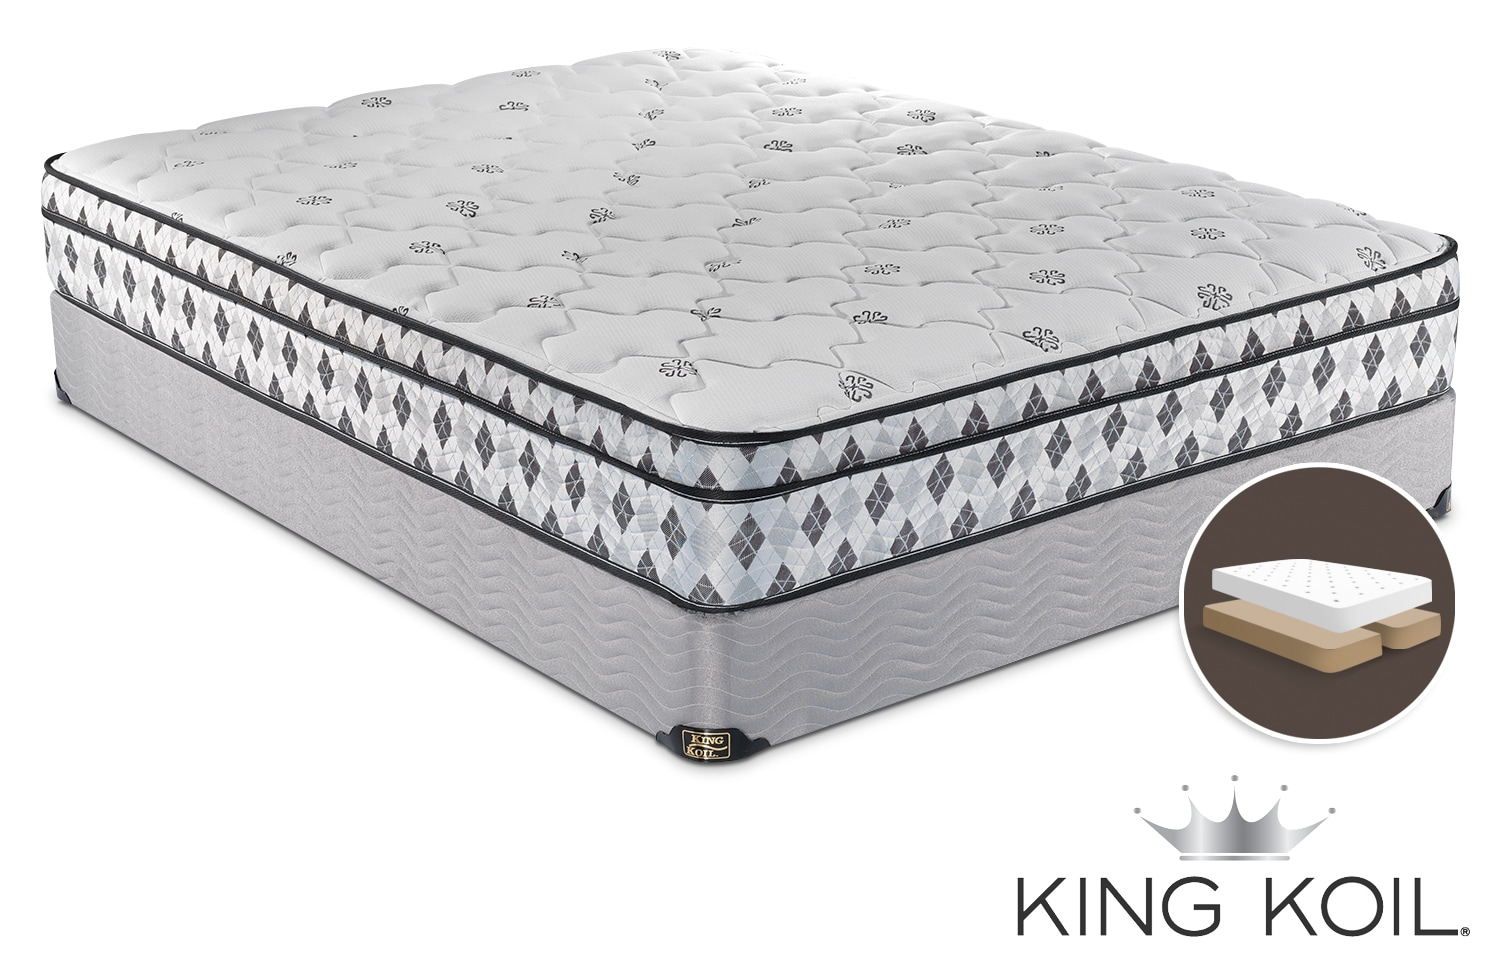 King Koil Heavenly Nights King Mattress/Boxspring Set